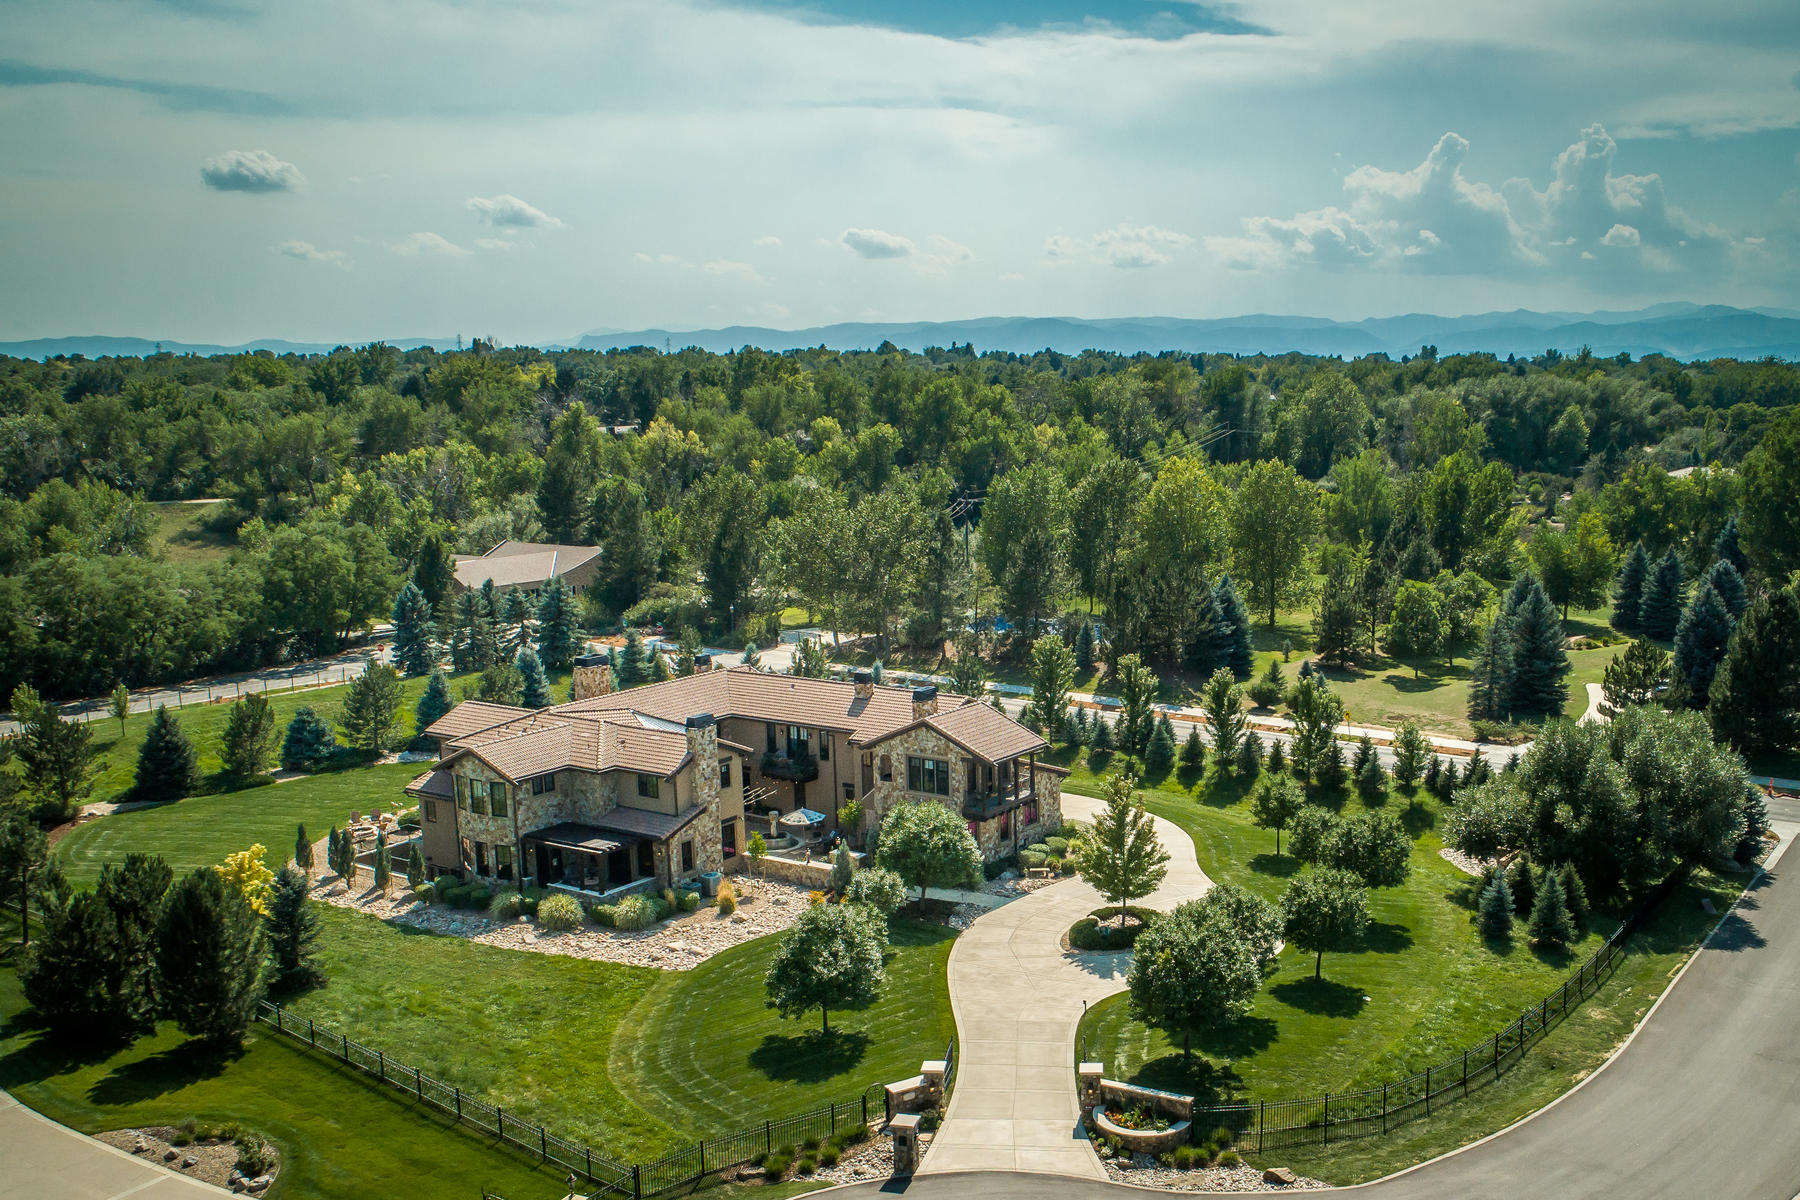 Single Family Home for Active at Be swept away in the romance of an Italian villa. 3830 E Fox Trl Greenwood Village, Colorado 80121 United States